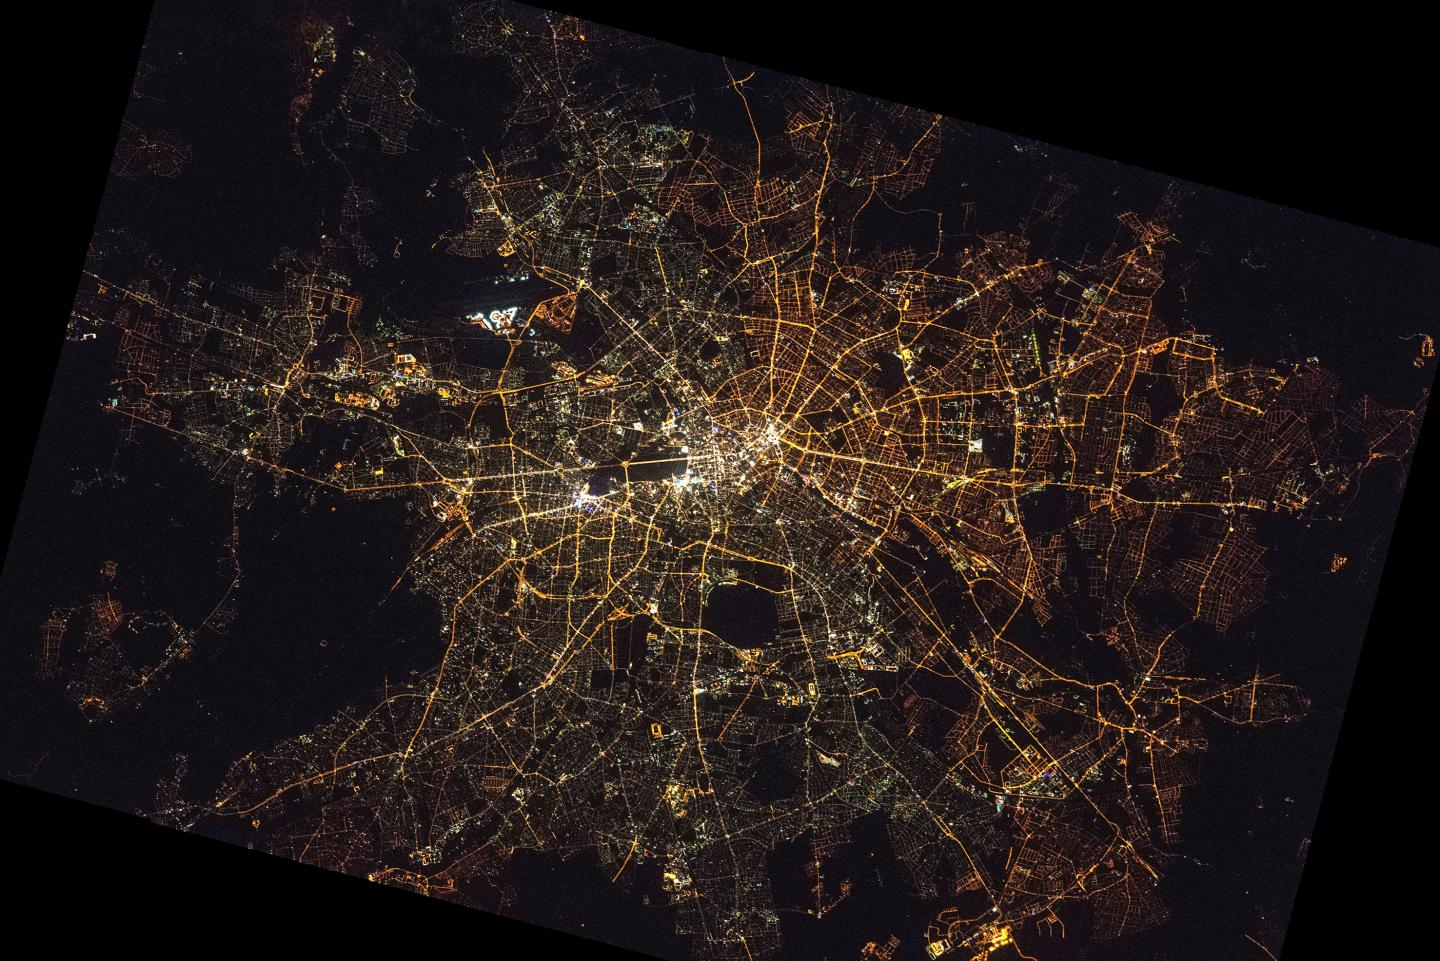 Astrophoto of Berlin at Night